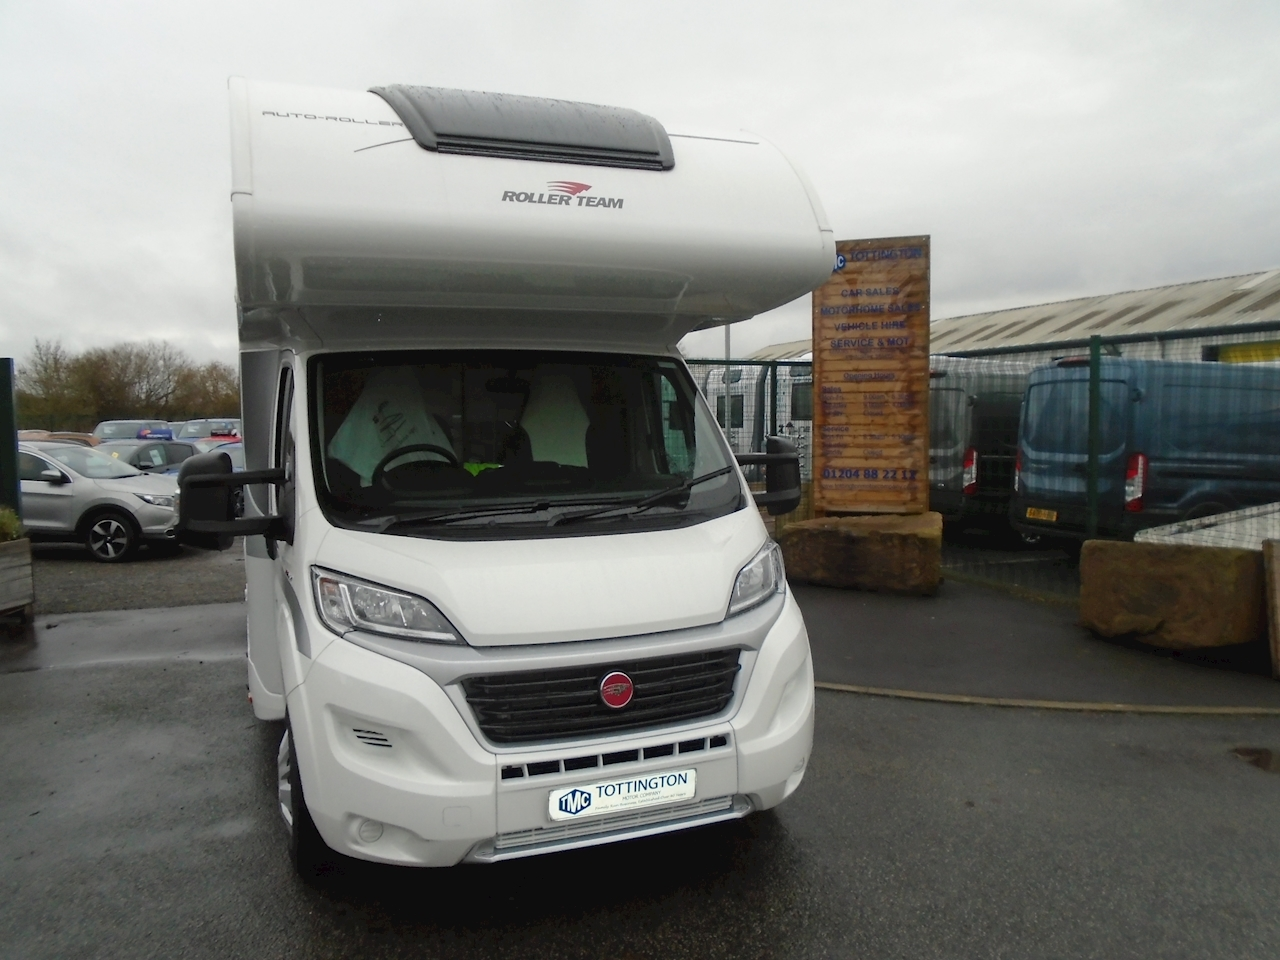 Rollerteam Auto-Roller 746  (New 2021 Model) 2300 Motorhome Automatic Diesel